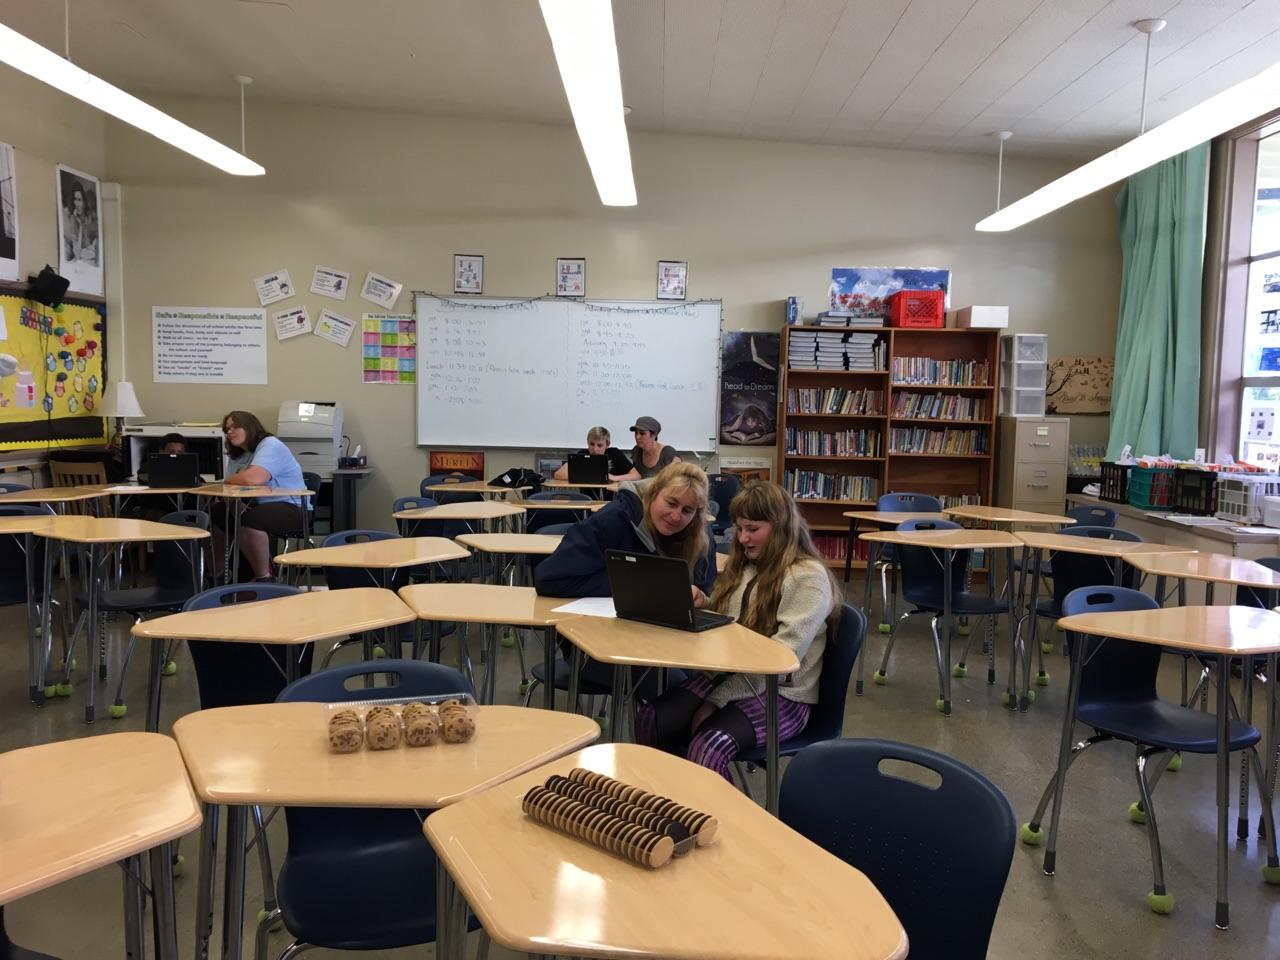 North Bend Middle School is trying to use Google technology to show off student work during for teacher parent conferences. (SBG photo)